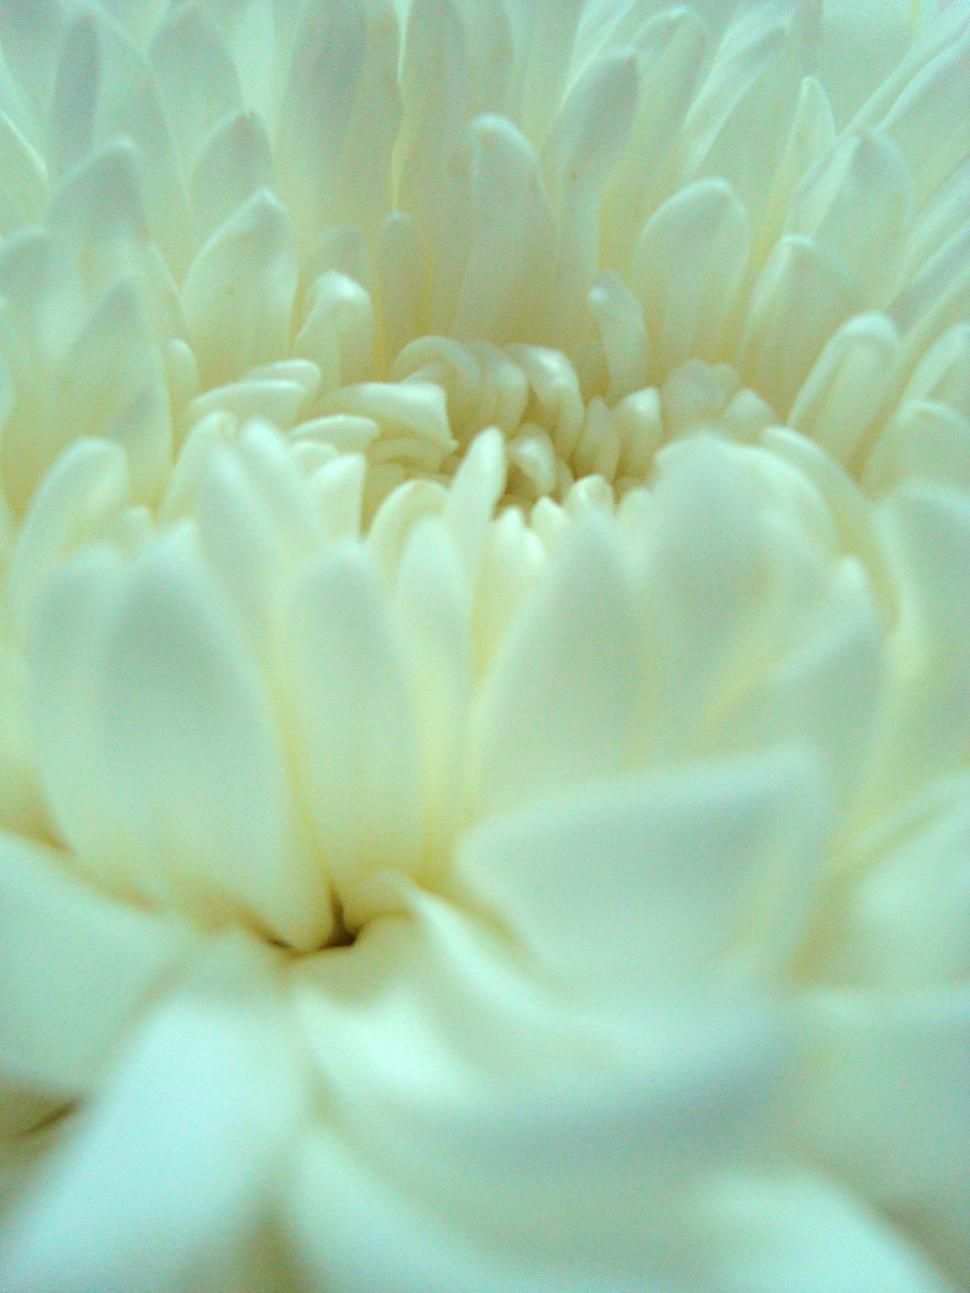 Download Free Stock HD Photo of White Flower Close-Up Online